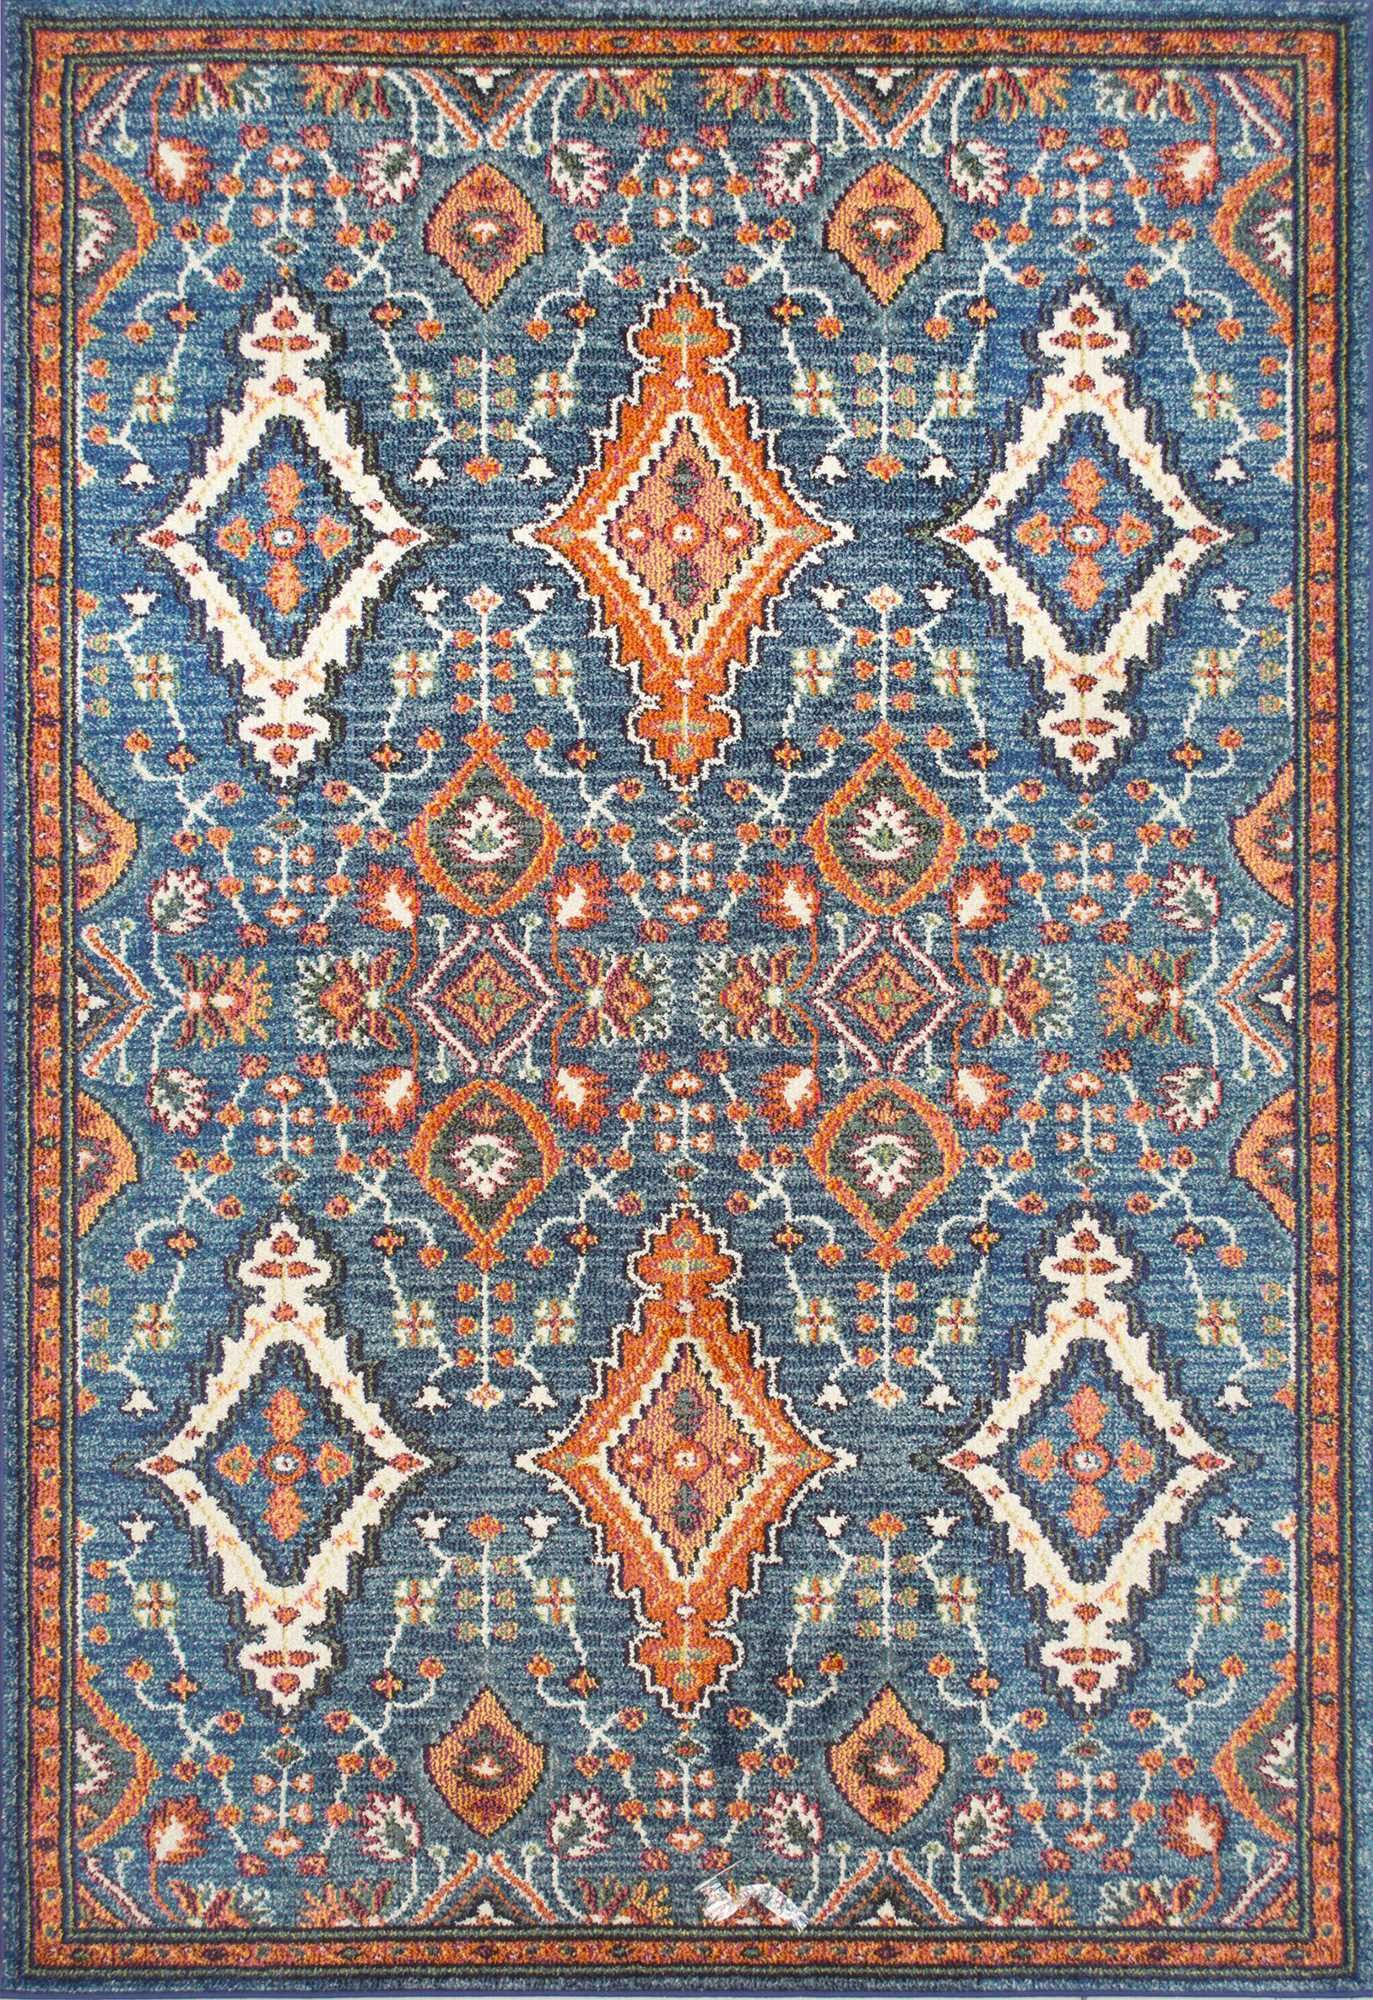 drops cb16 rug traditional rugsbuy - Cheap Rugs For Sale